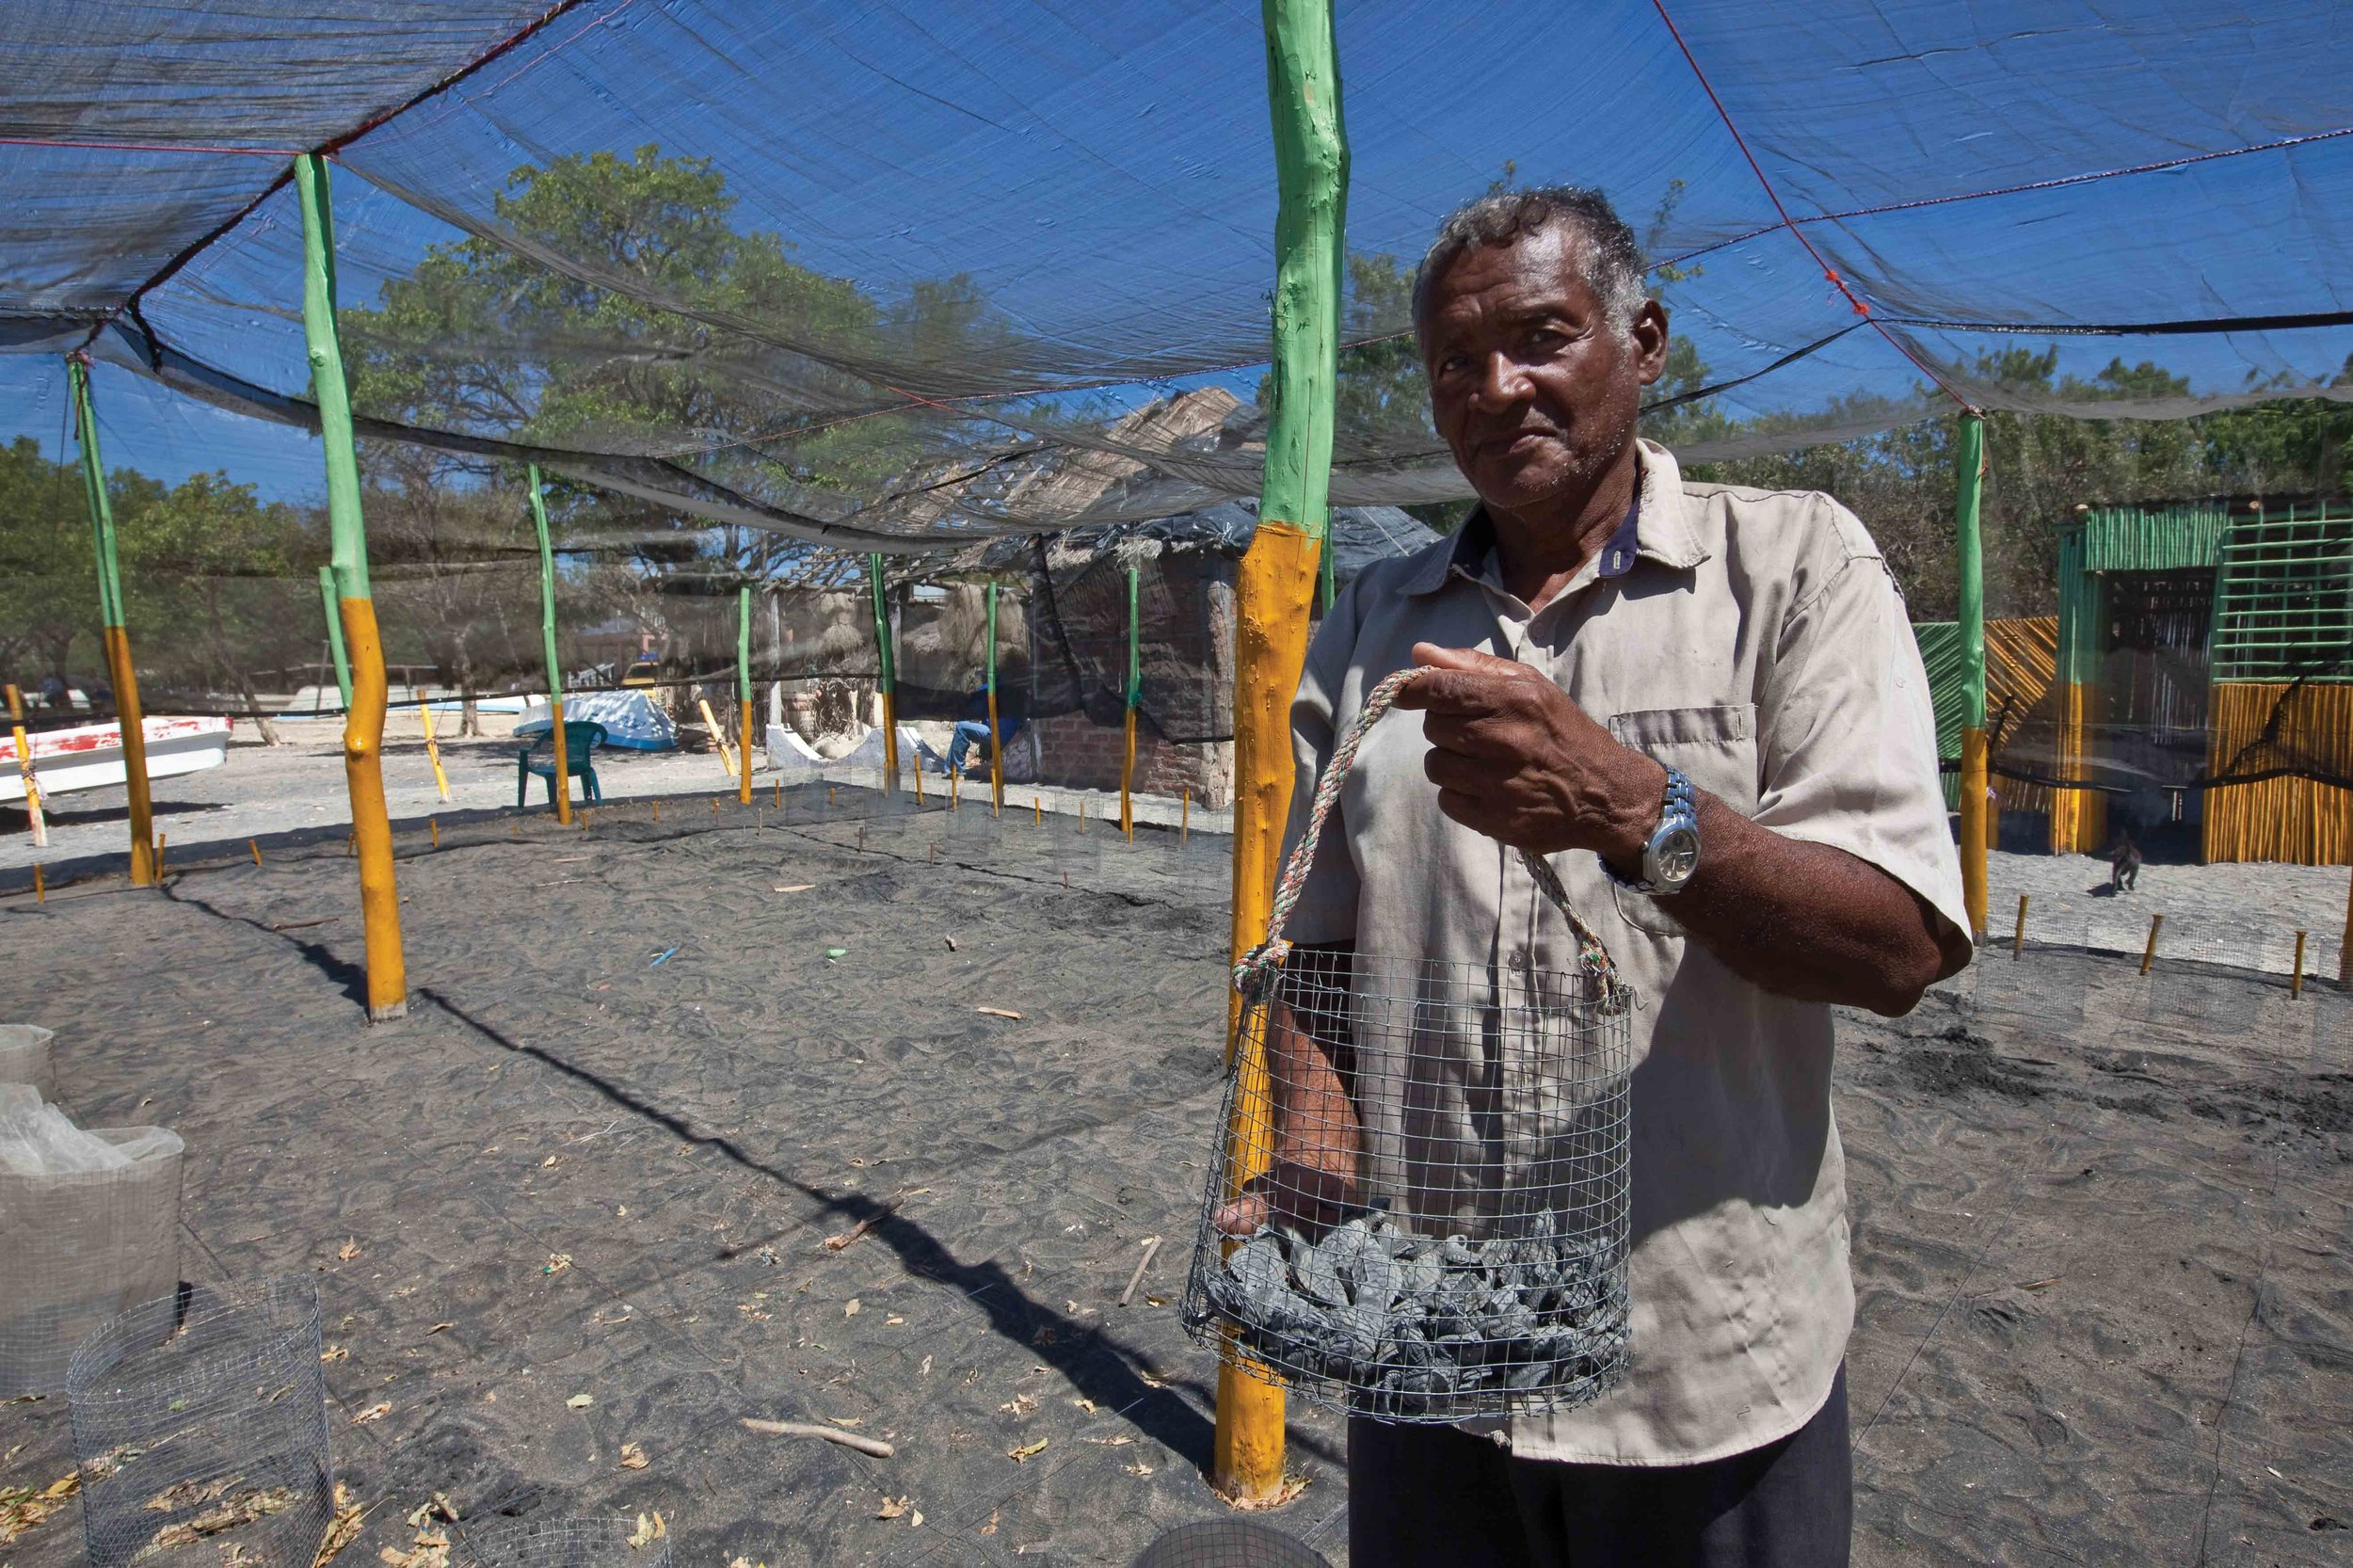 Don Justo holds a basket of newly hatched olive ridley turtles inside the hatchery at El Astillero on Nicaragua's Pacific coast. The hatchery was constructed by the community in collaboration with Fauna and Flora International and MARENA as part of a project that employs community members to collect turtle eggs for conservation. © Brian J. Hutchinson